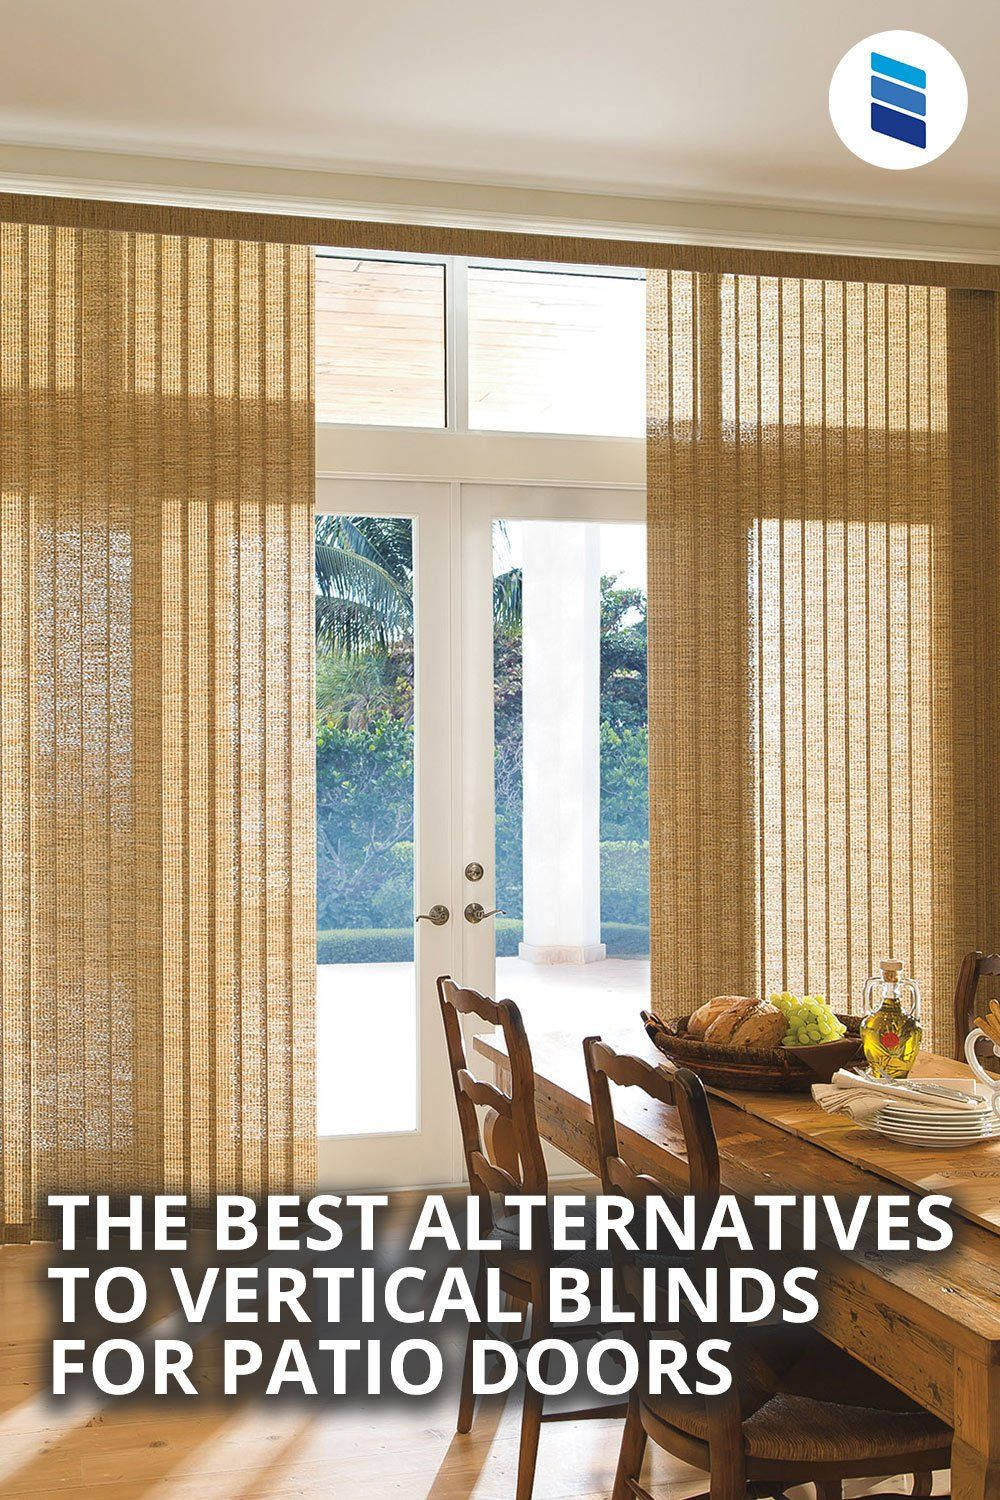 Blinds For Sliding Glass Doors Alternatives To Vertical Blinds Blinds Com In 2020 Patio Door Treatments Door Coverings Glass Door Coverings